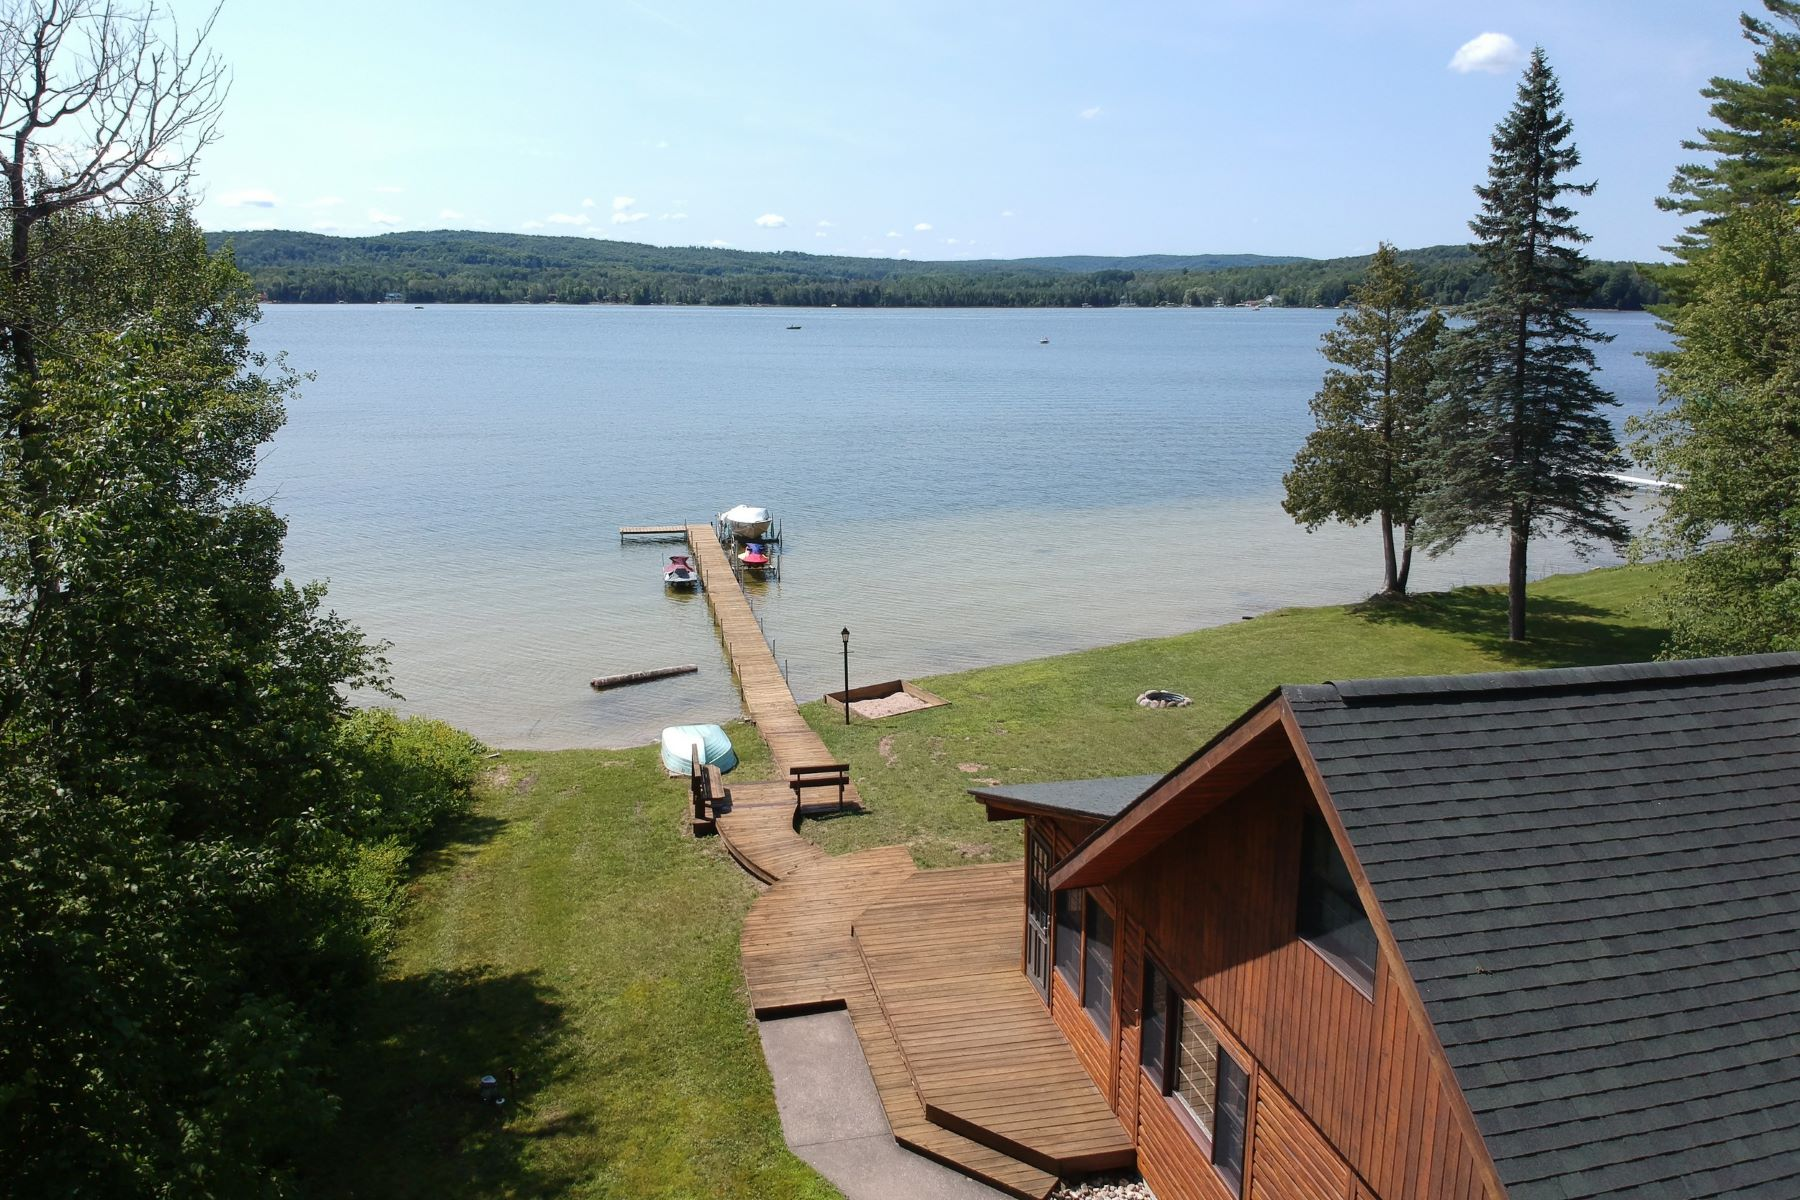 Single Family Homes for Active at Town and Country waterfront log home on Pickerel Lake 10696 McCarthy Drive Alanson, Michigan 49706 United States